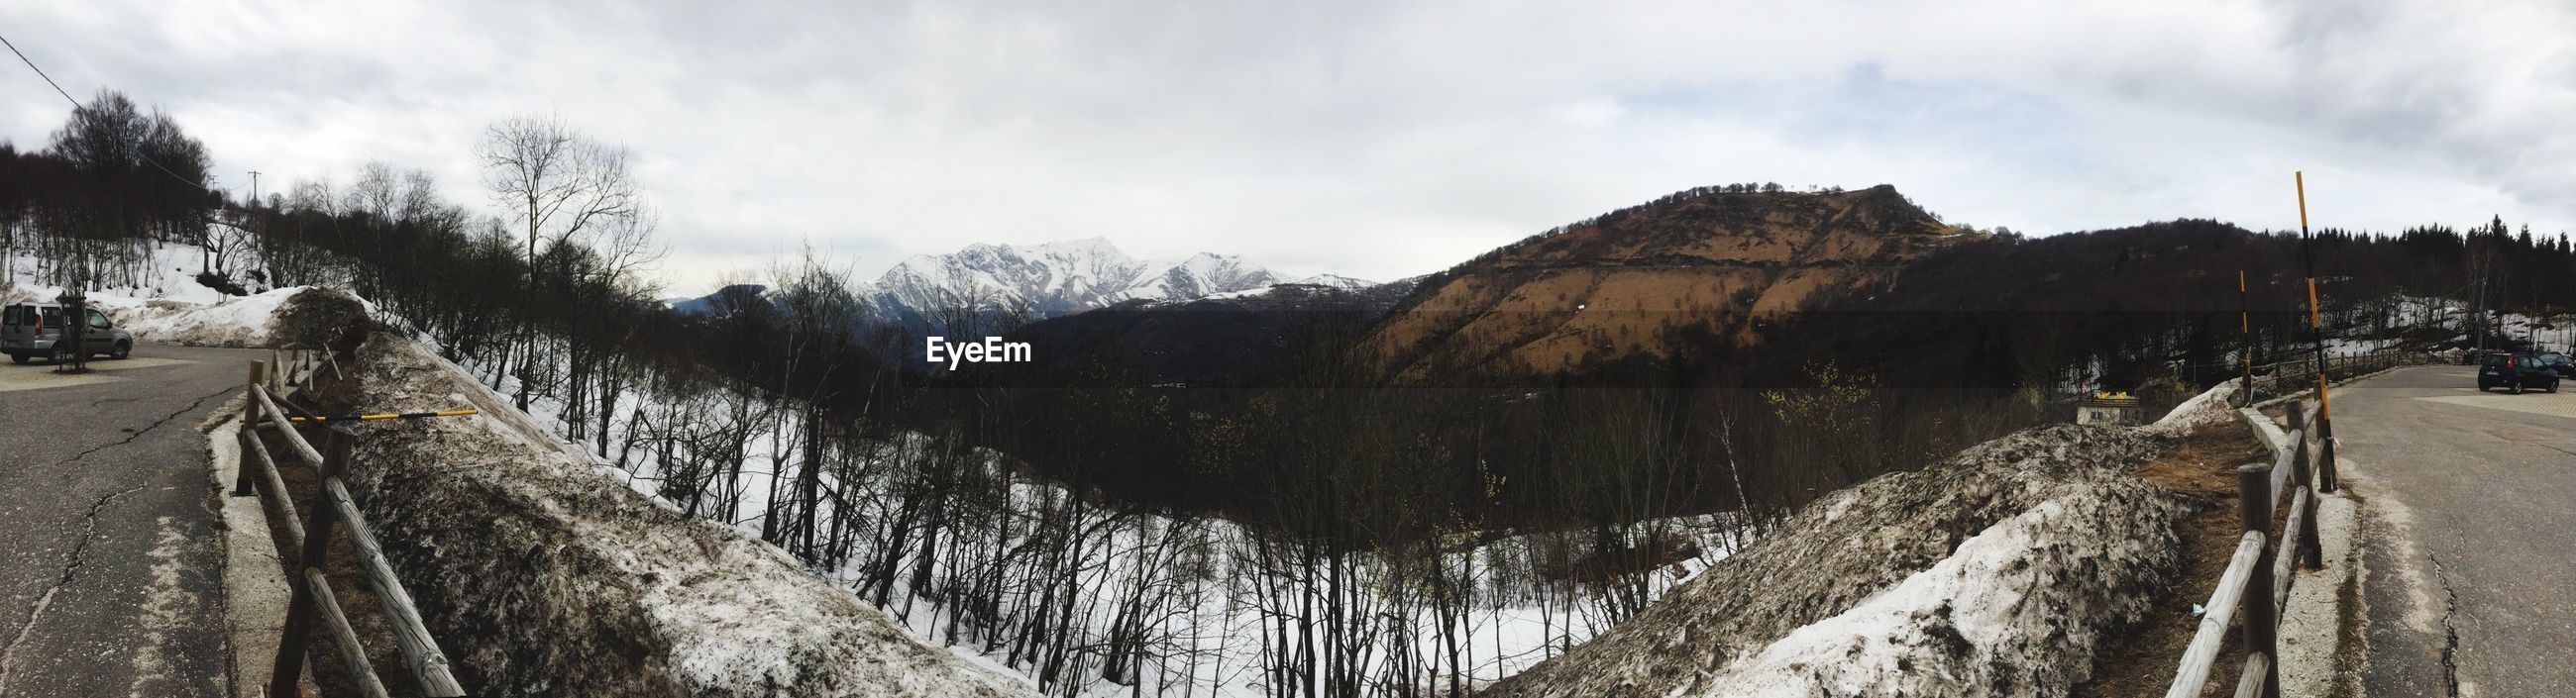 Panoramic view of street against mountains during winter